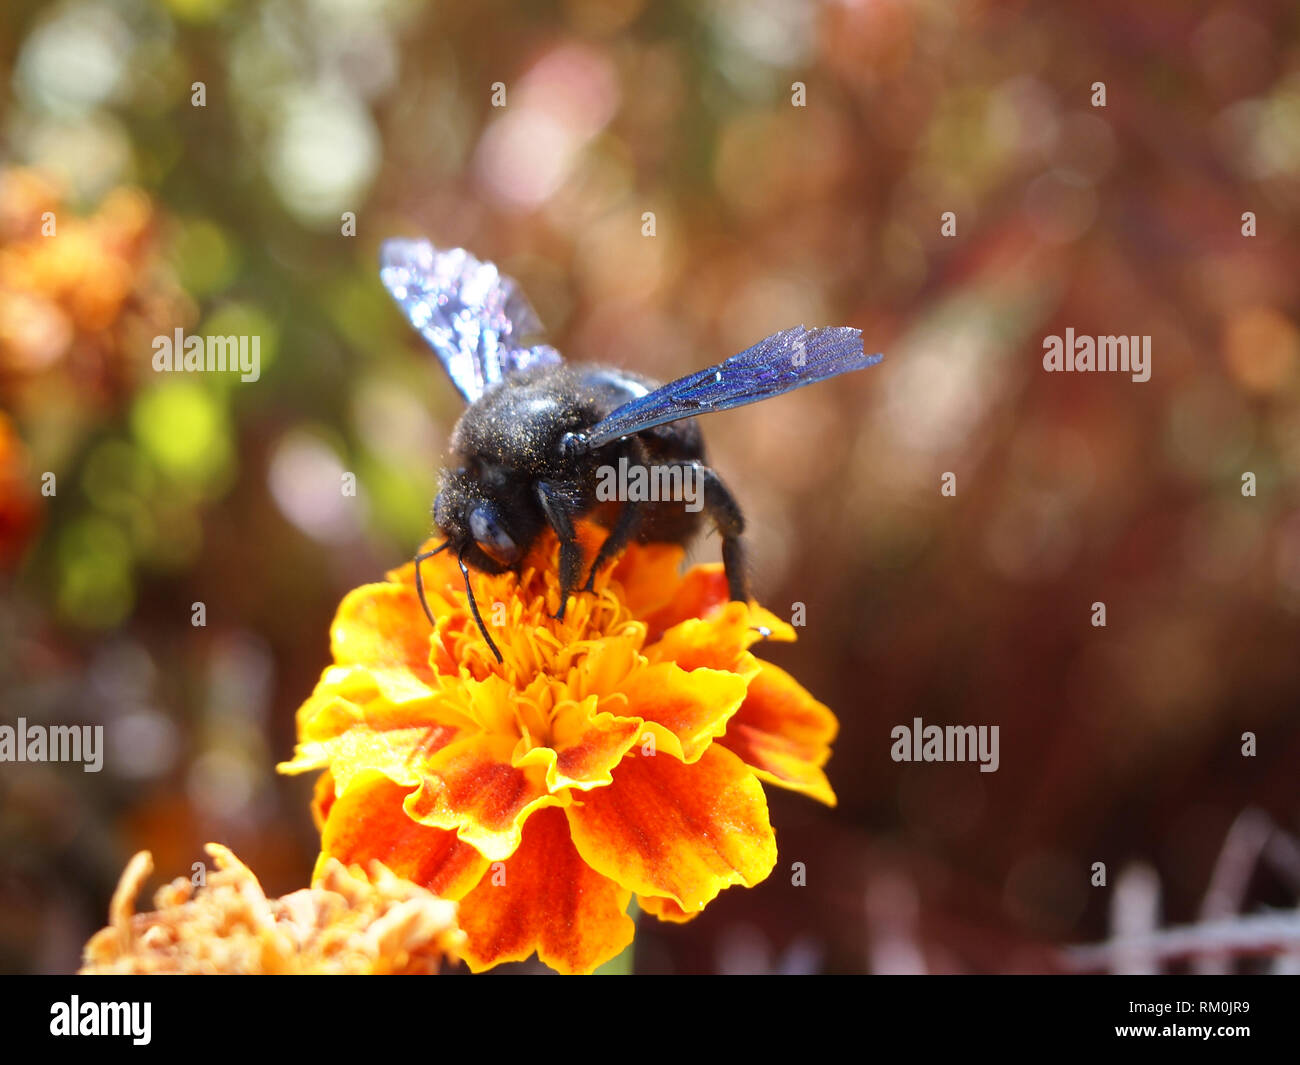 Large wild bee eating nectar from a flower in Ladakh, India - Stock Image